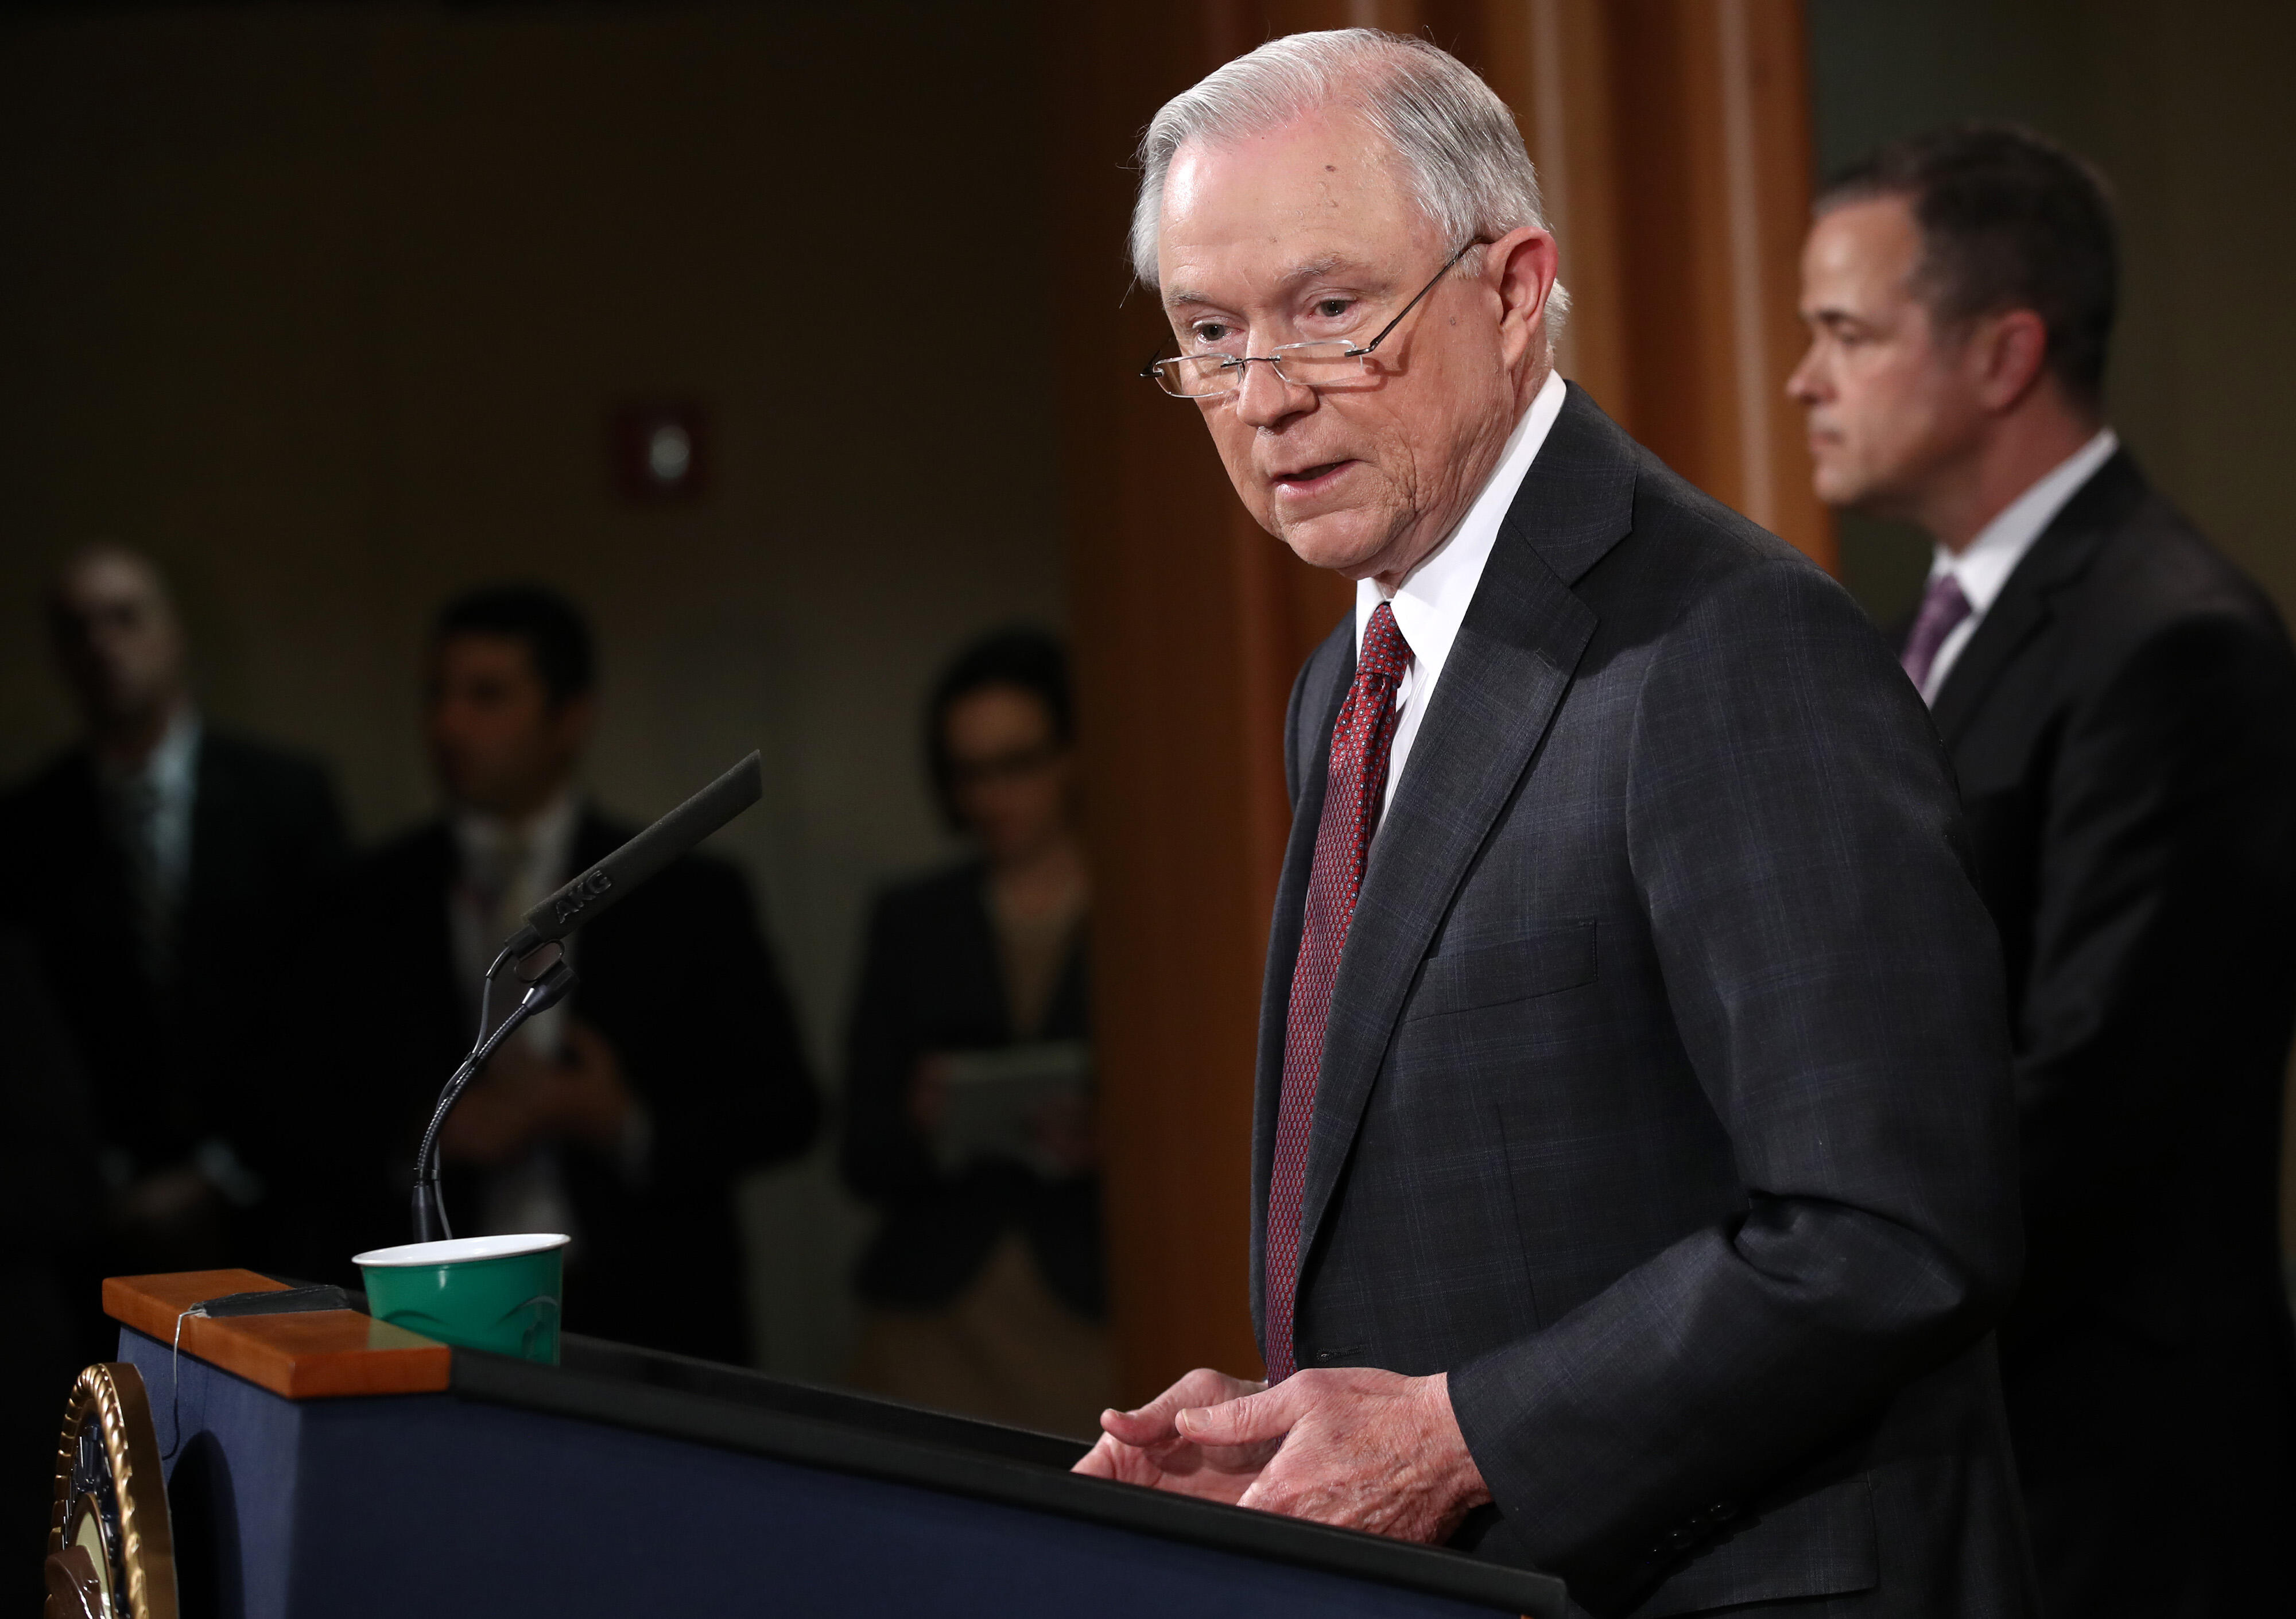 WASHINGTON, DC - MARCH 02:   U.S. Attorney General Jeff Sessions speaks during a press conference at  the Department of Justice on March 2, 2017 in Washington, DC.   Sessions addressed the calls for him to recuse himself from Russia investigations  after